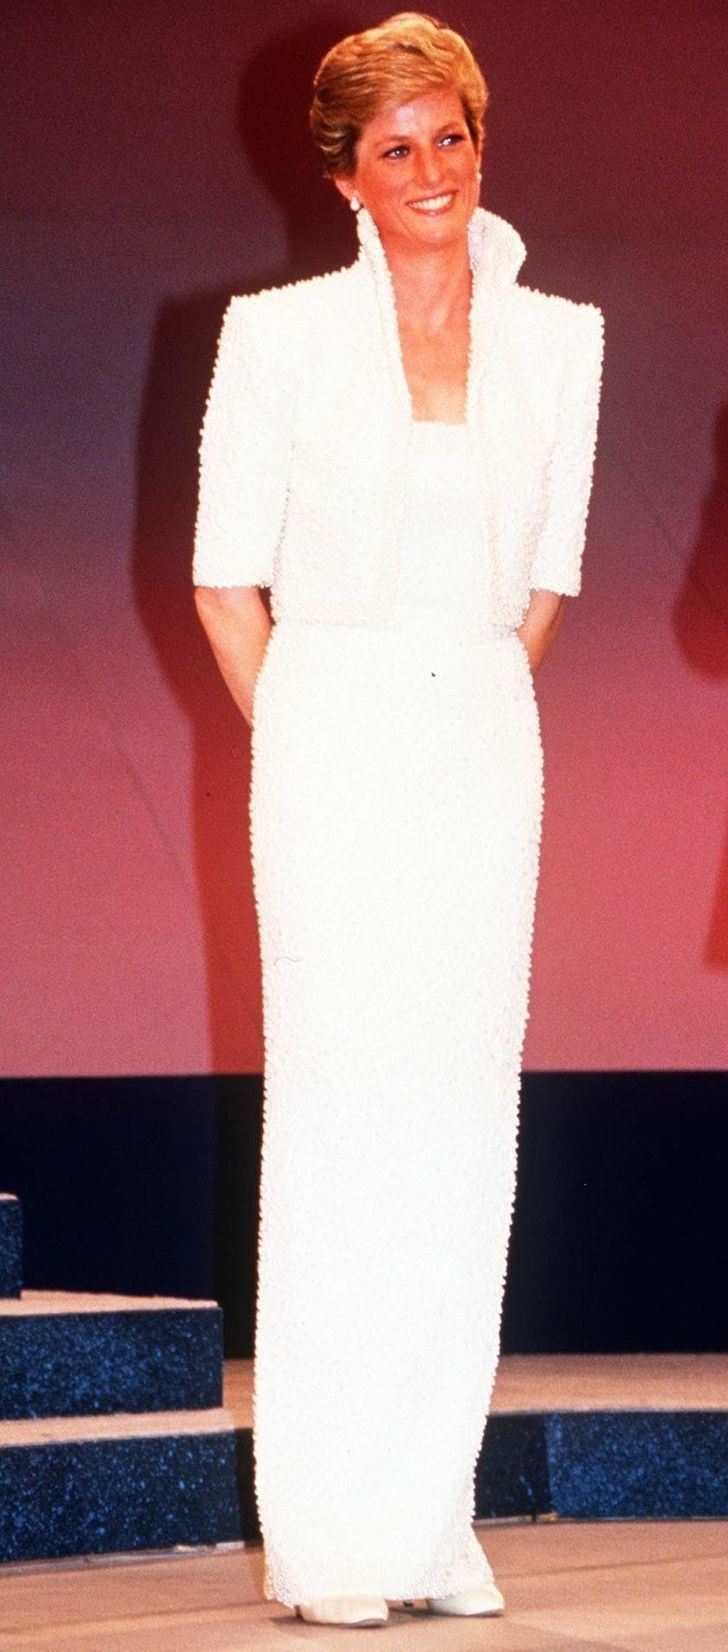 21 Iconic Dresses Worn by Princess Diana That Still Leave Us Stunned